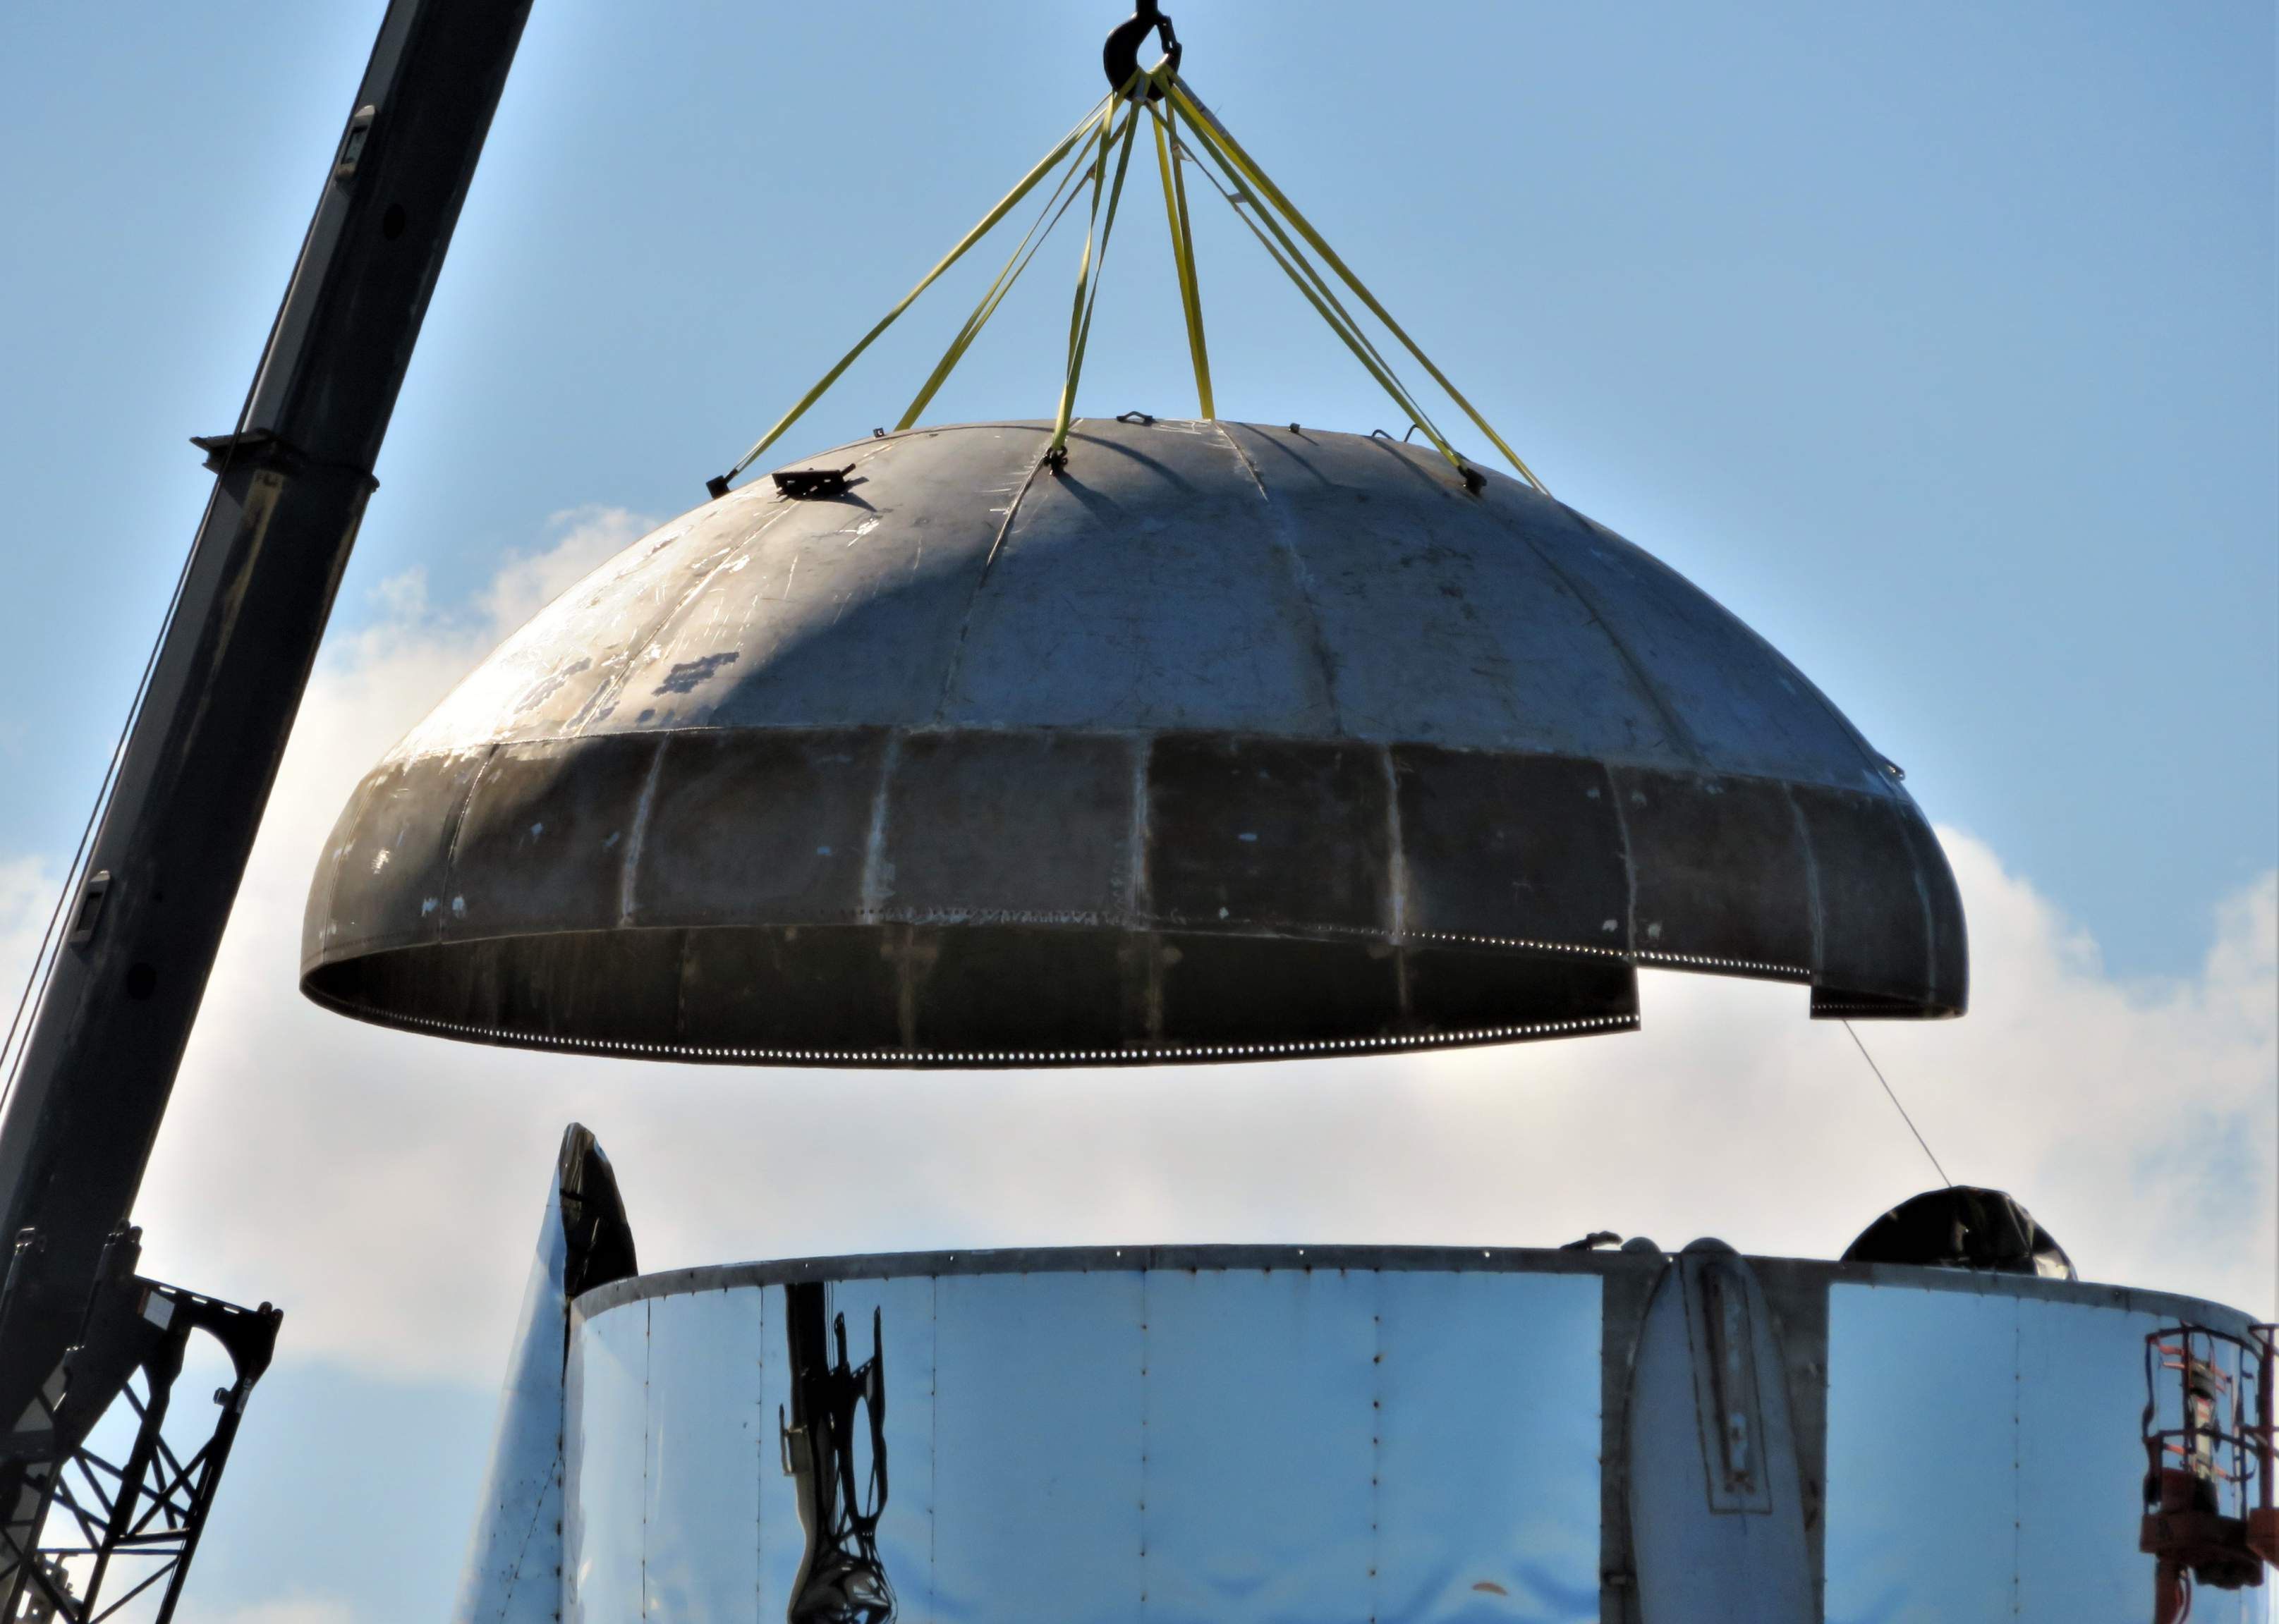 Boca Chica Starship final dome install 012419 (NASASpaceflight – bocachicagal) 2 (c)